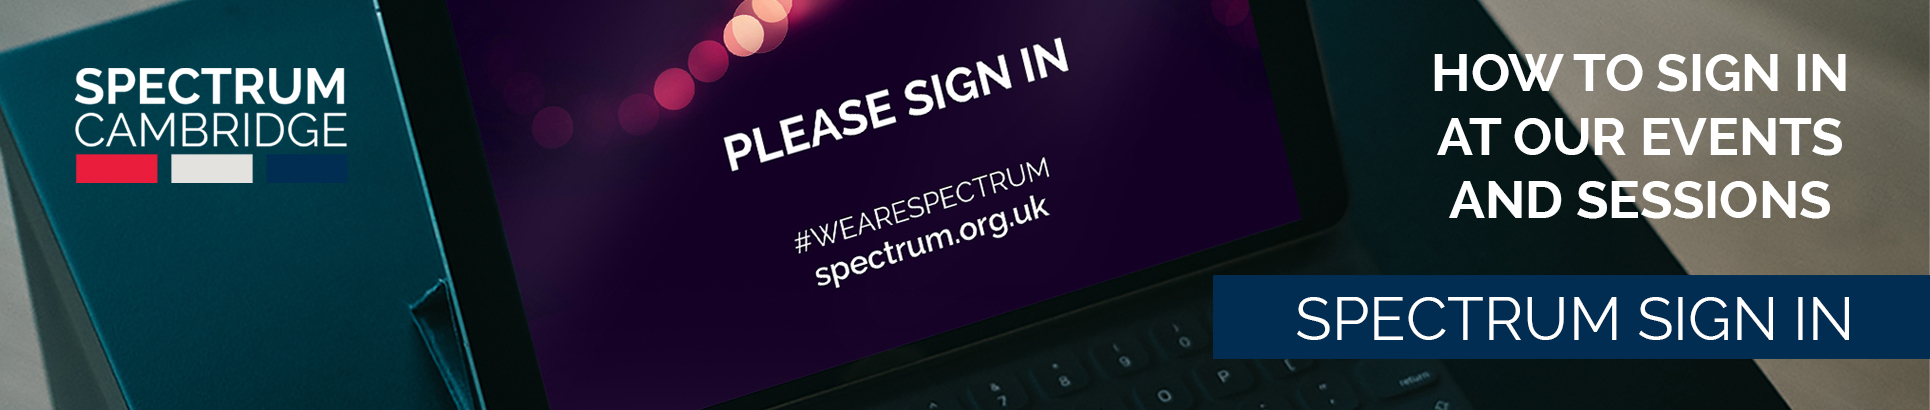 How to sign in at Spectrum Events